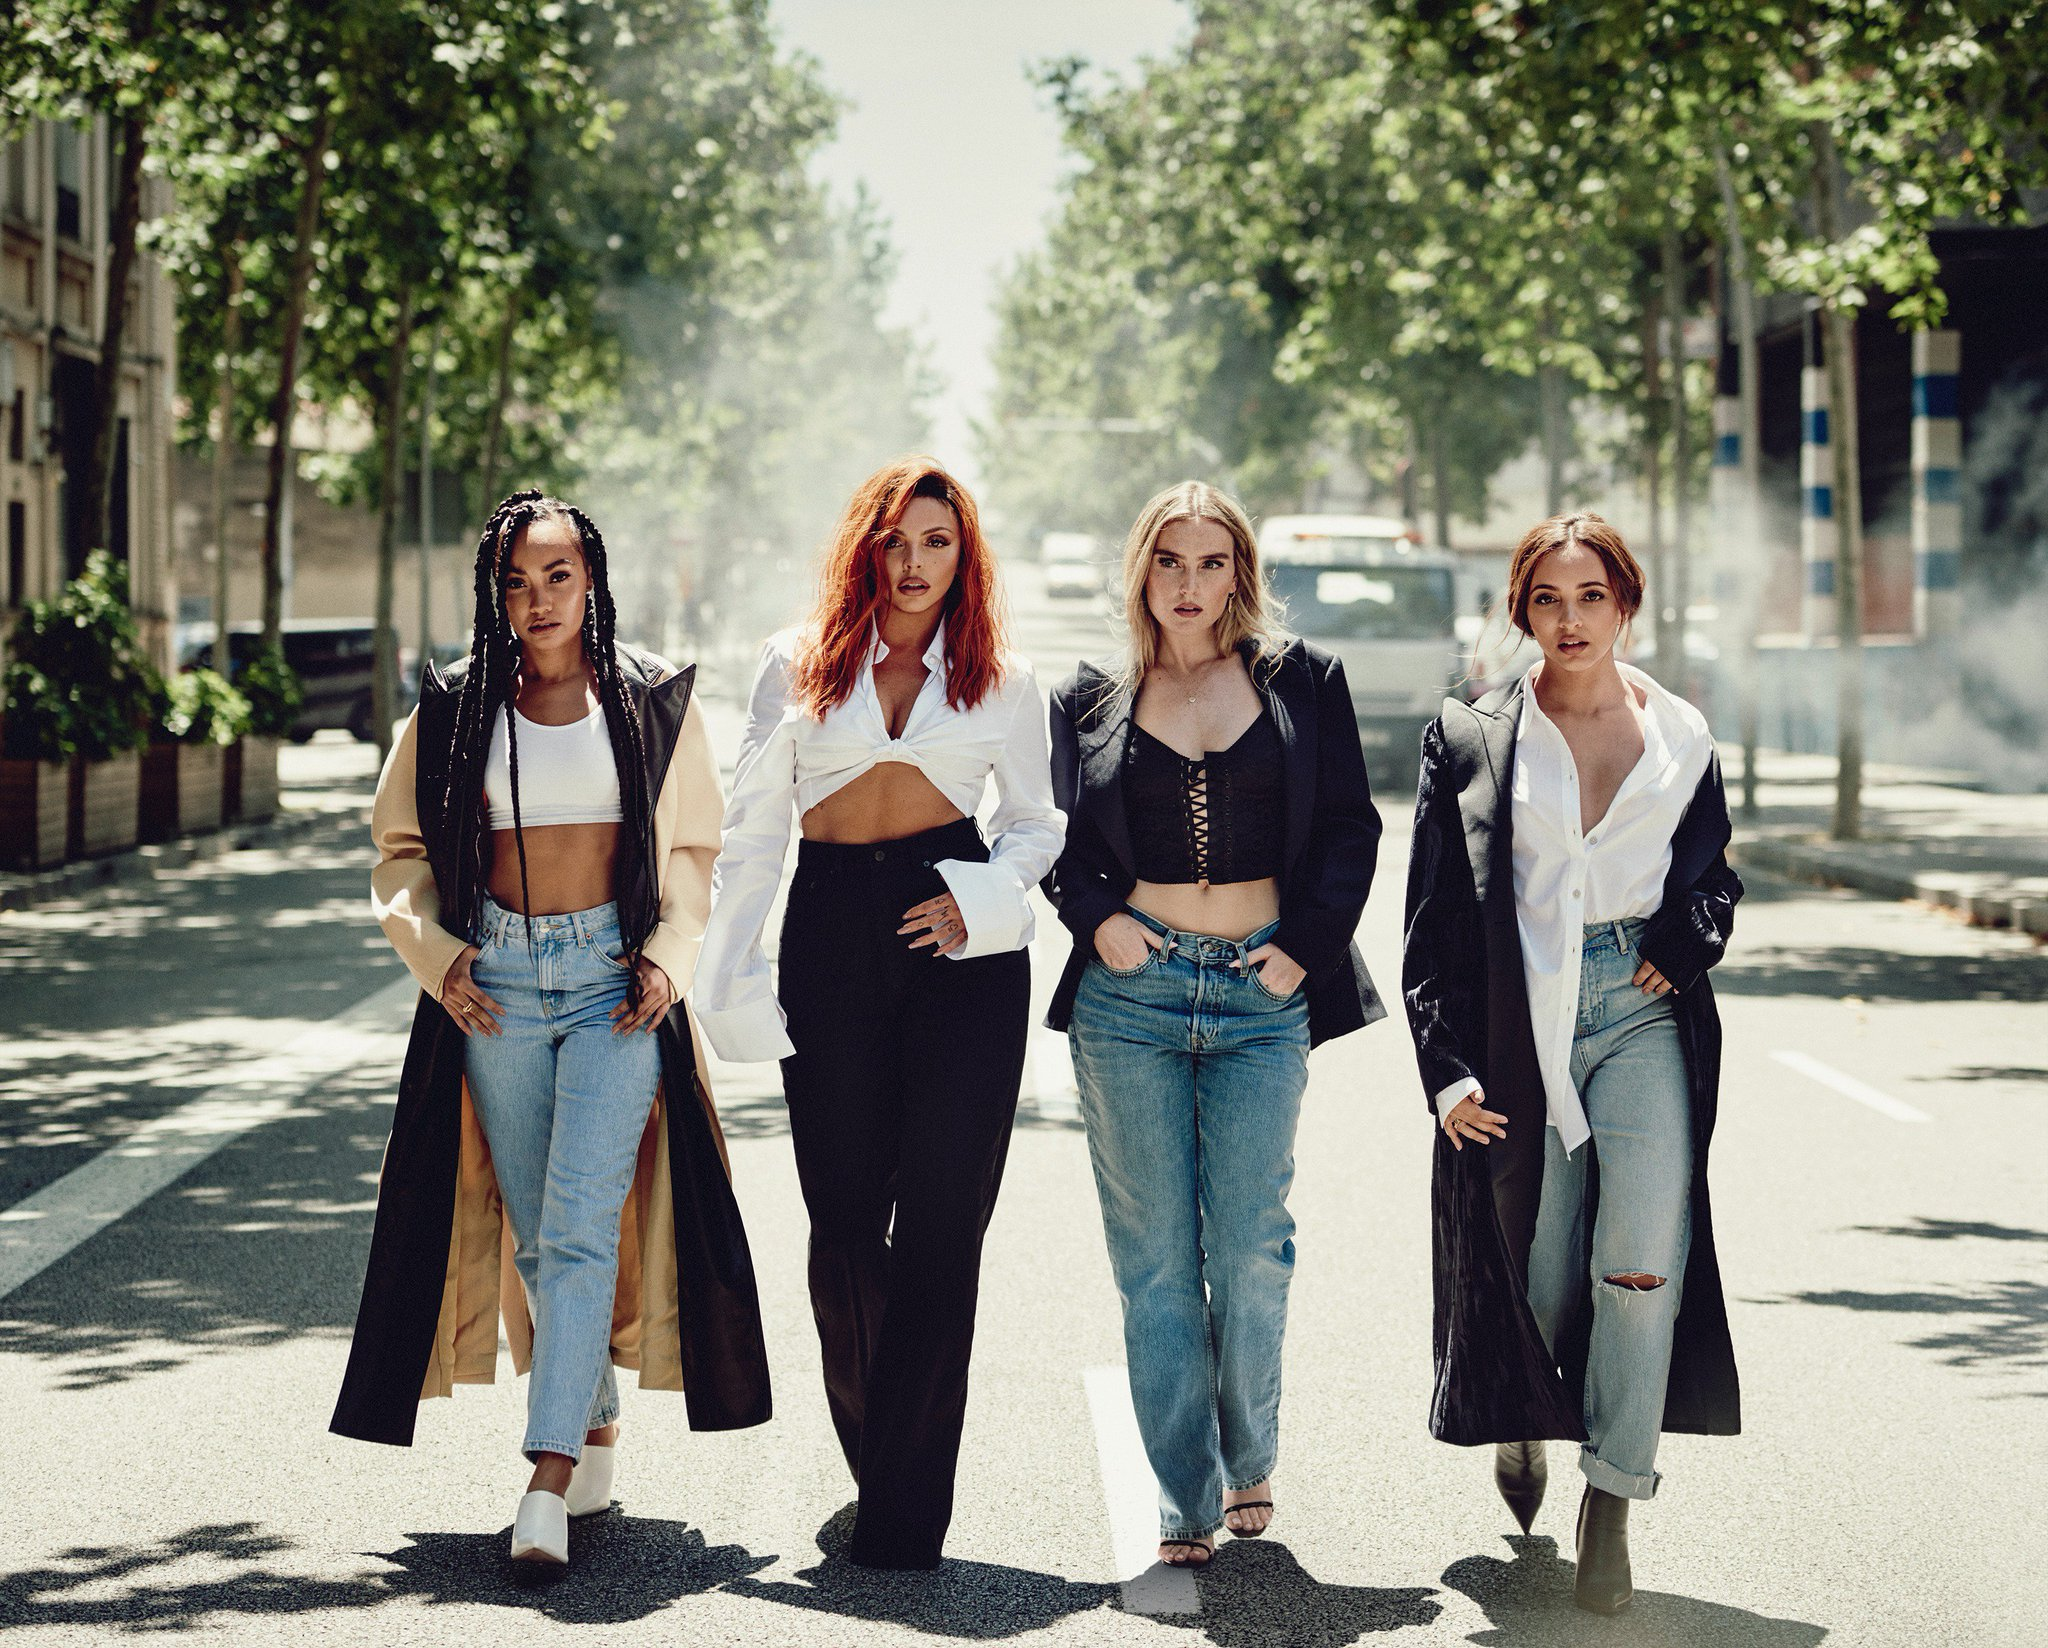 #LM5 is available to pre-order now ♡ https://t.co/gIwsJD5zIo https://t.co/tm5RDbjMCJ